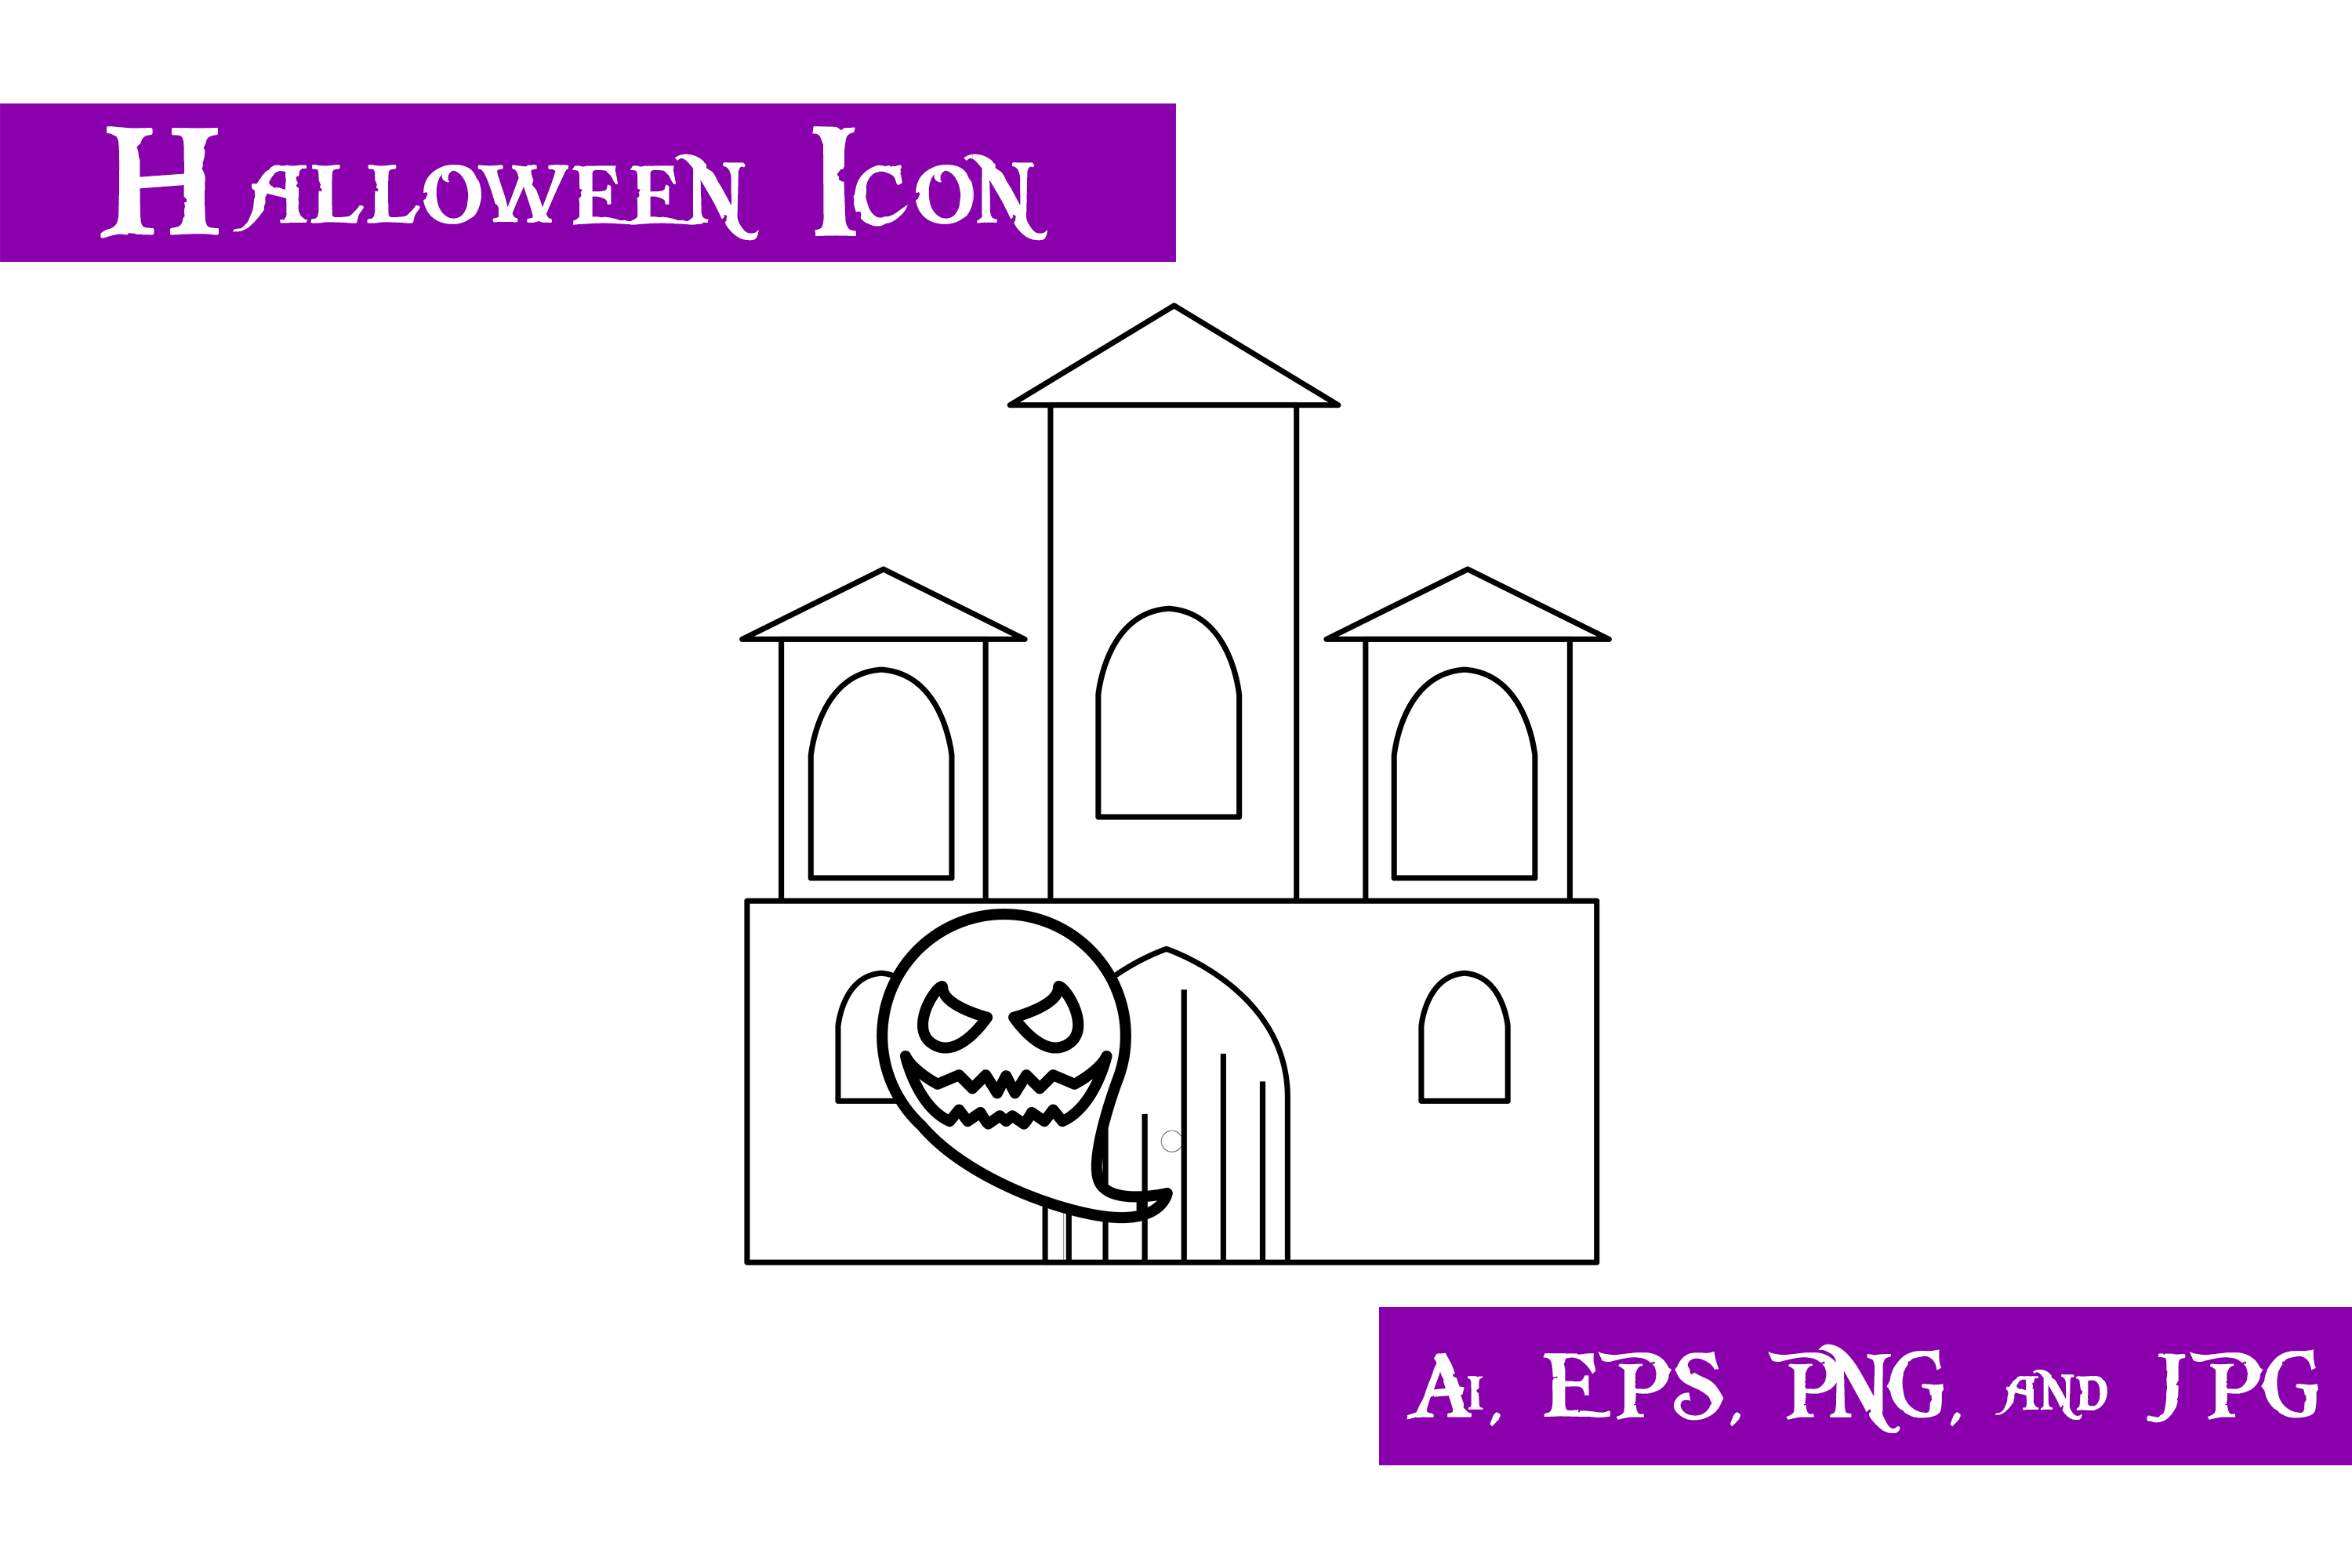 Download Free Ghost Castle Halloween Icon Graphic By Purplespoonpirates for Cricut Explore, Silhouette and other cutting machines.